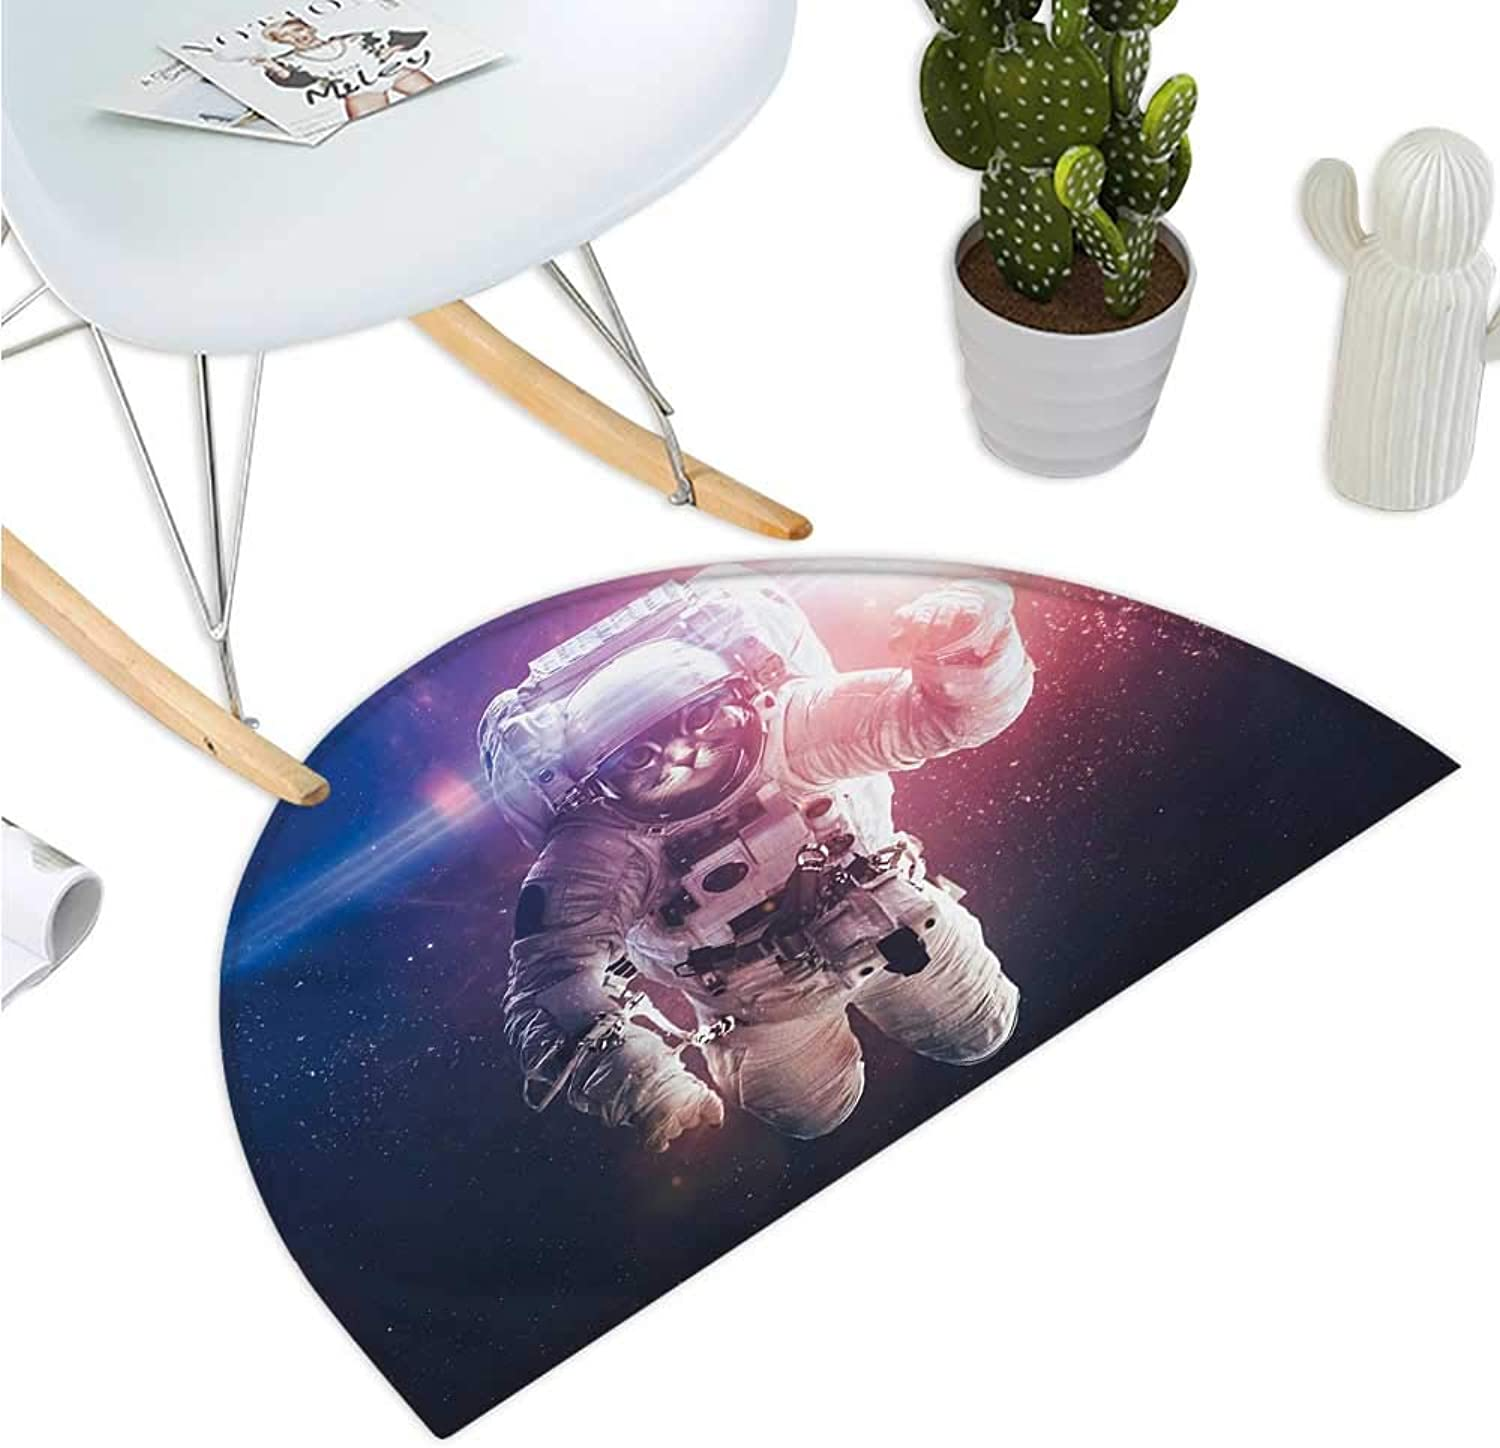 Space Cat Semicircular Cushion Flying Cat Without Gravity with Clusters Planet Eclipse Image Bathroom Mat H 47.2  xD 70.8  White Purple and Dark bluee